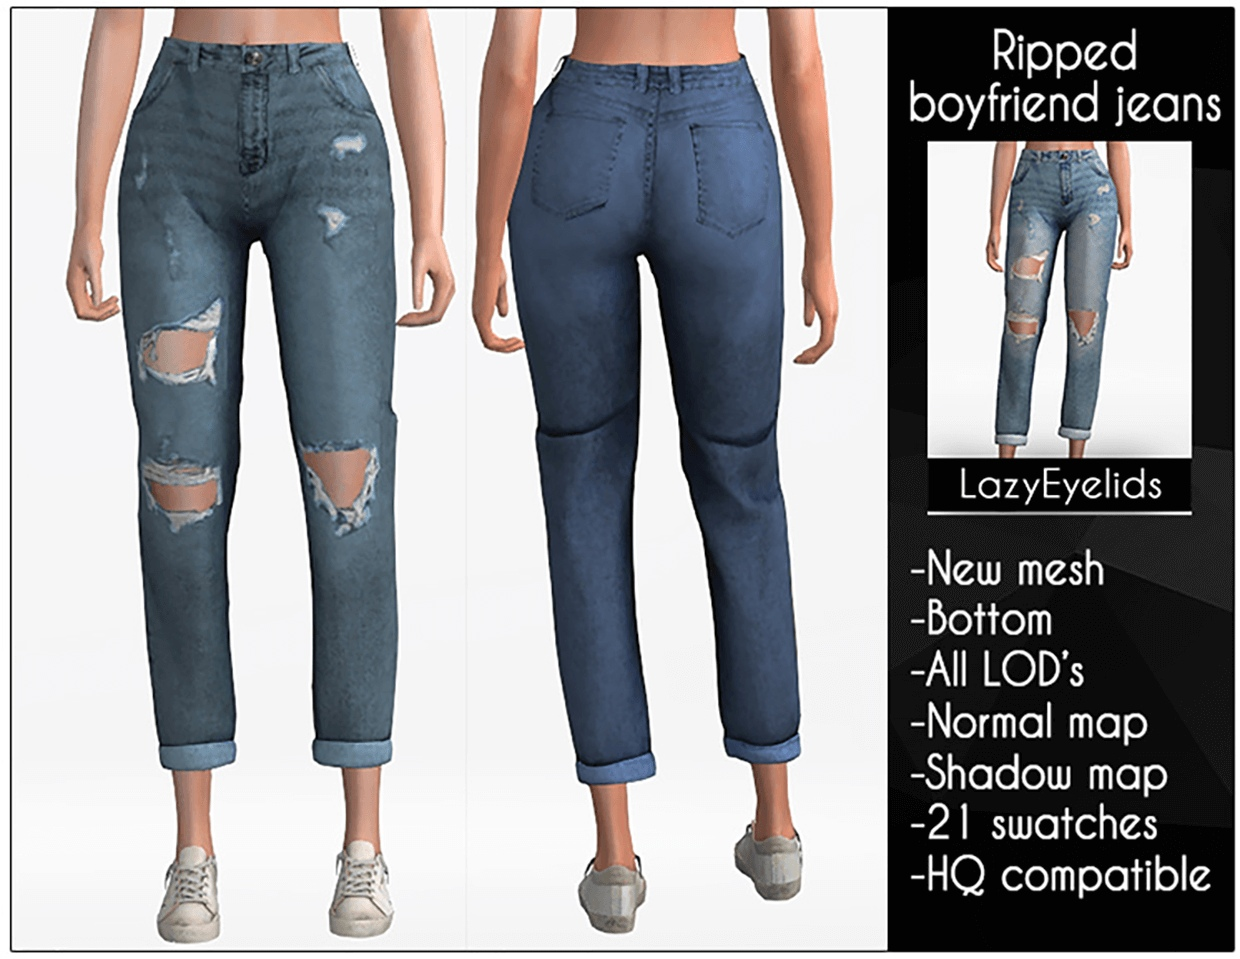 Ripped boyfriend jeans by Lazy_Eyelids